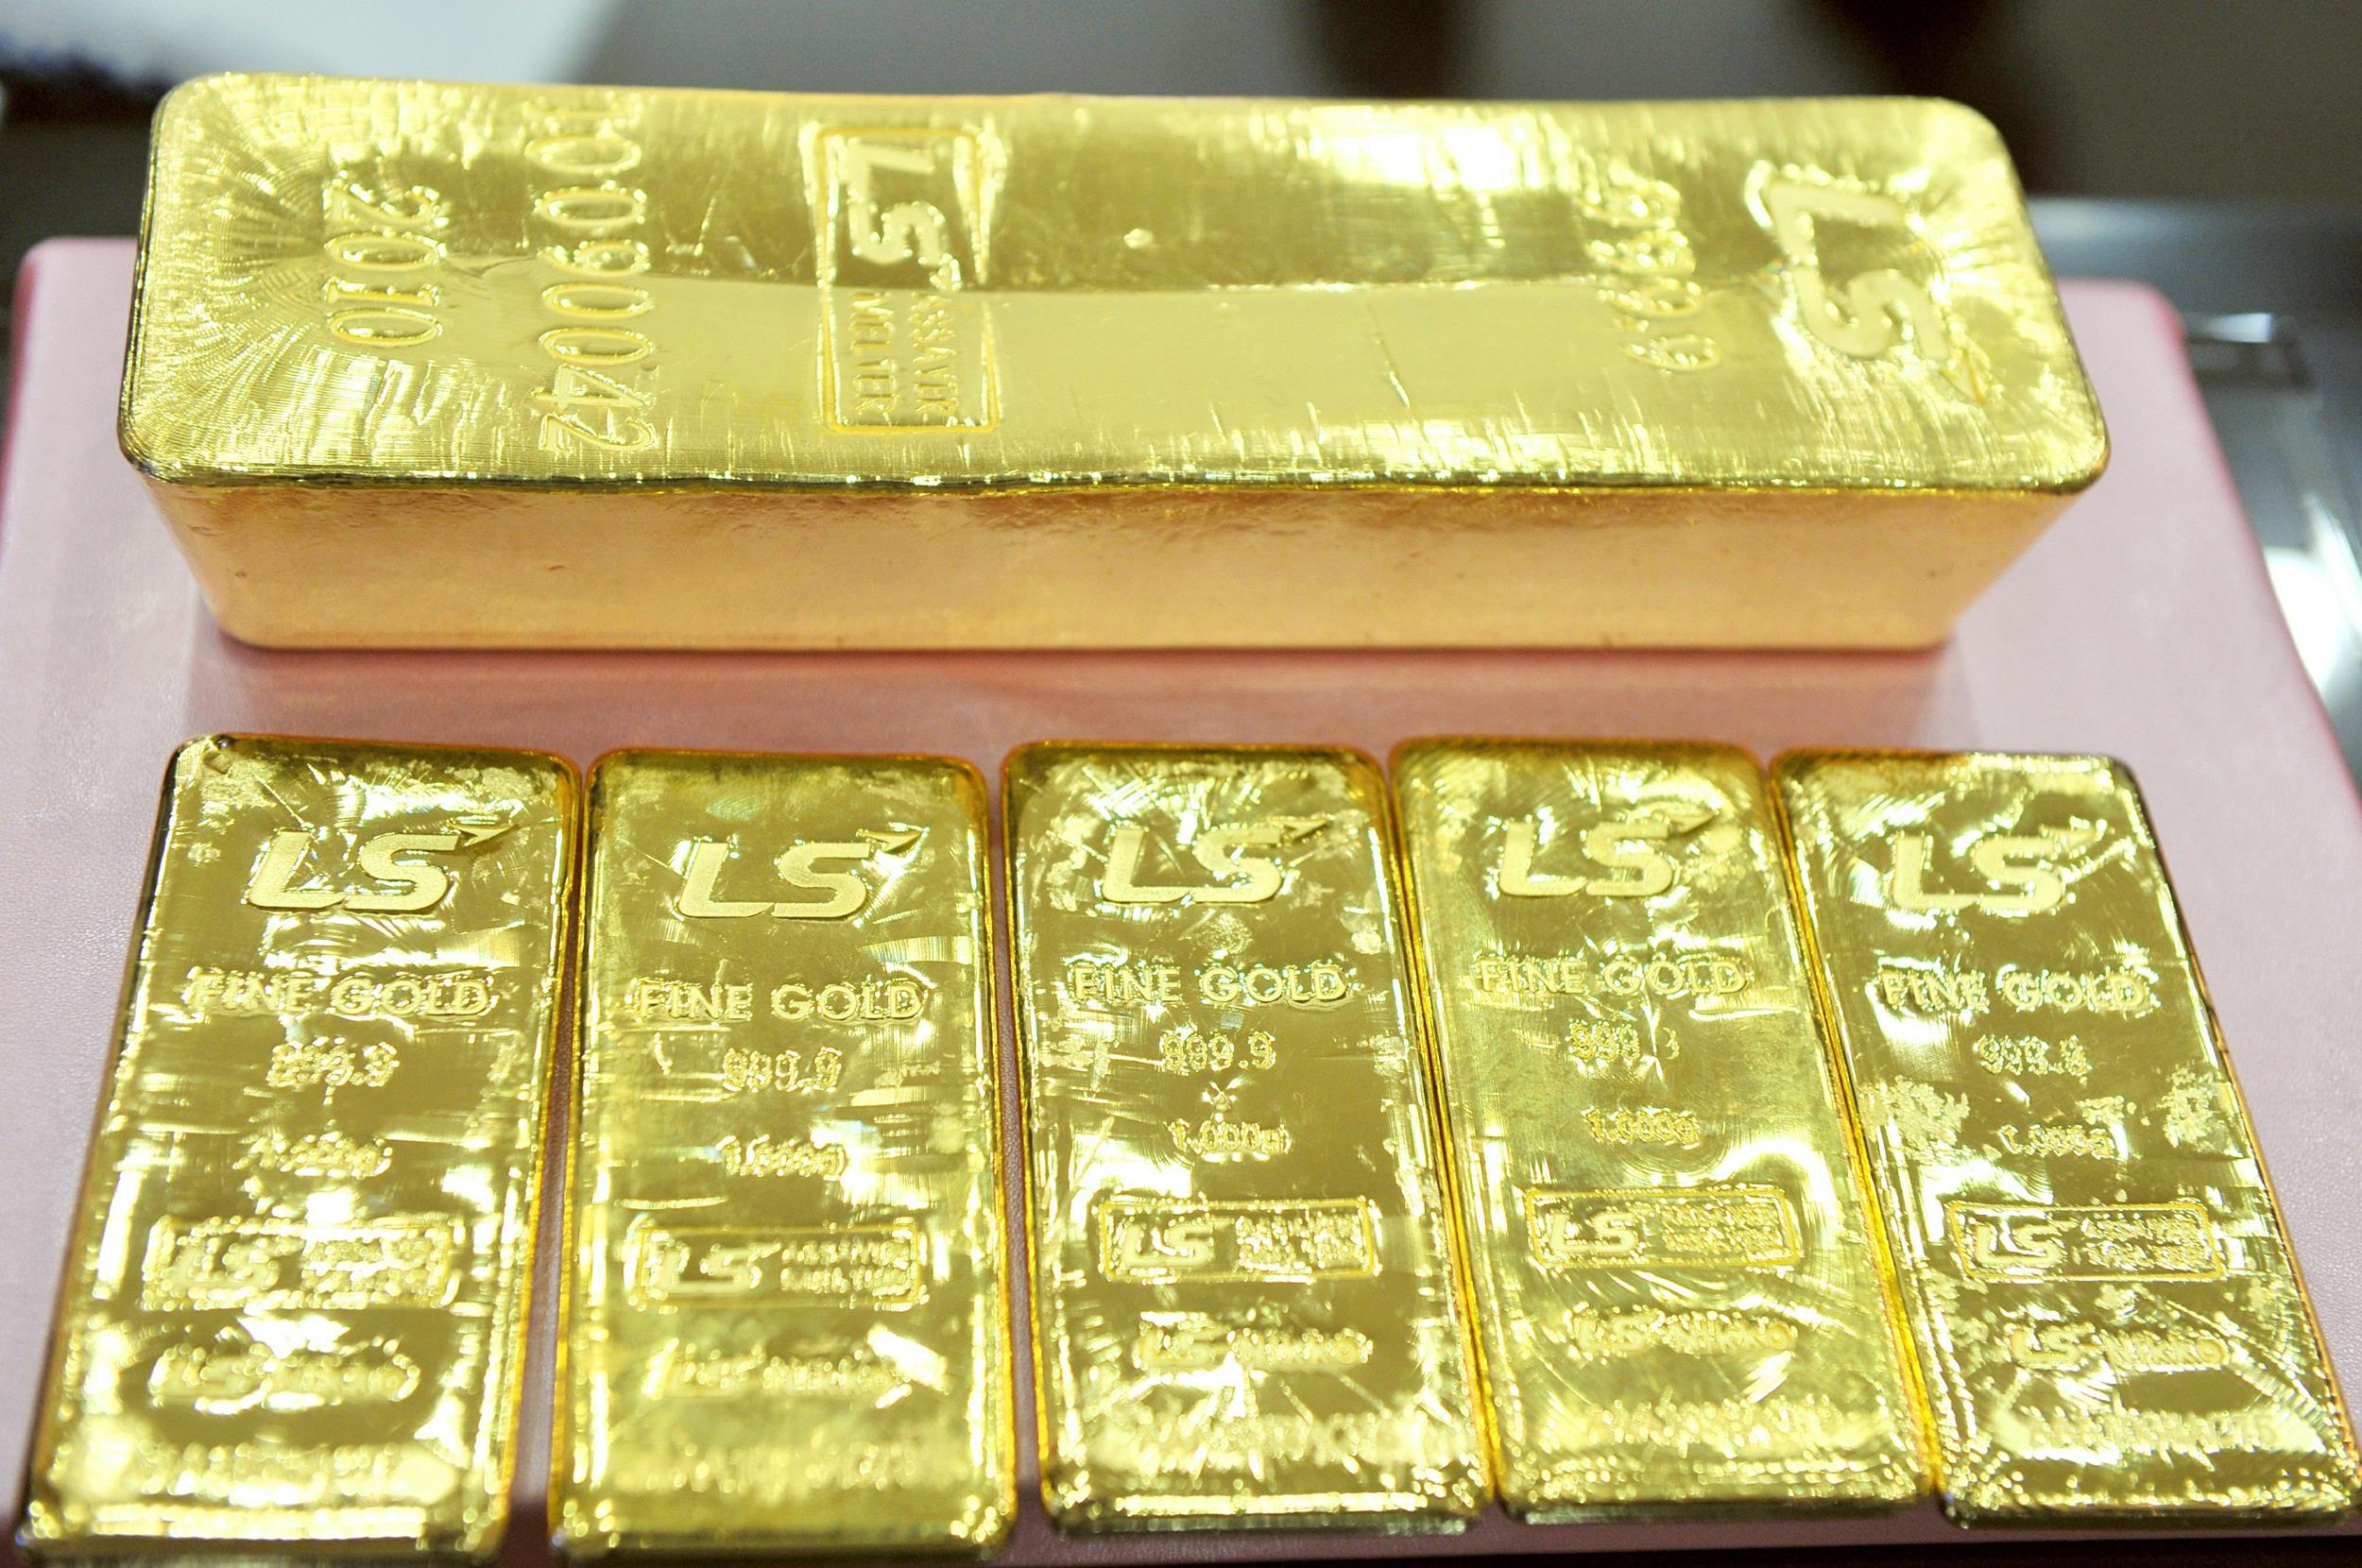 Gunmen Steal 250 Pounds Of Gold From Iraqi Jeweler Police